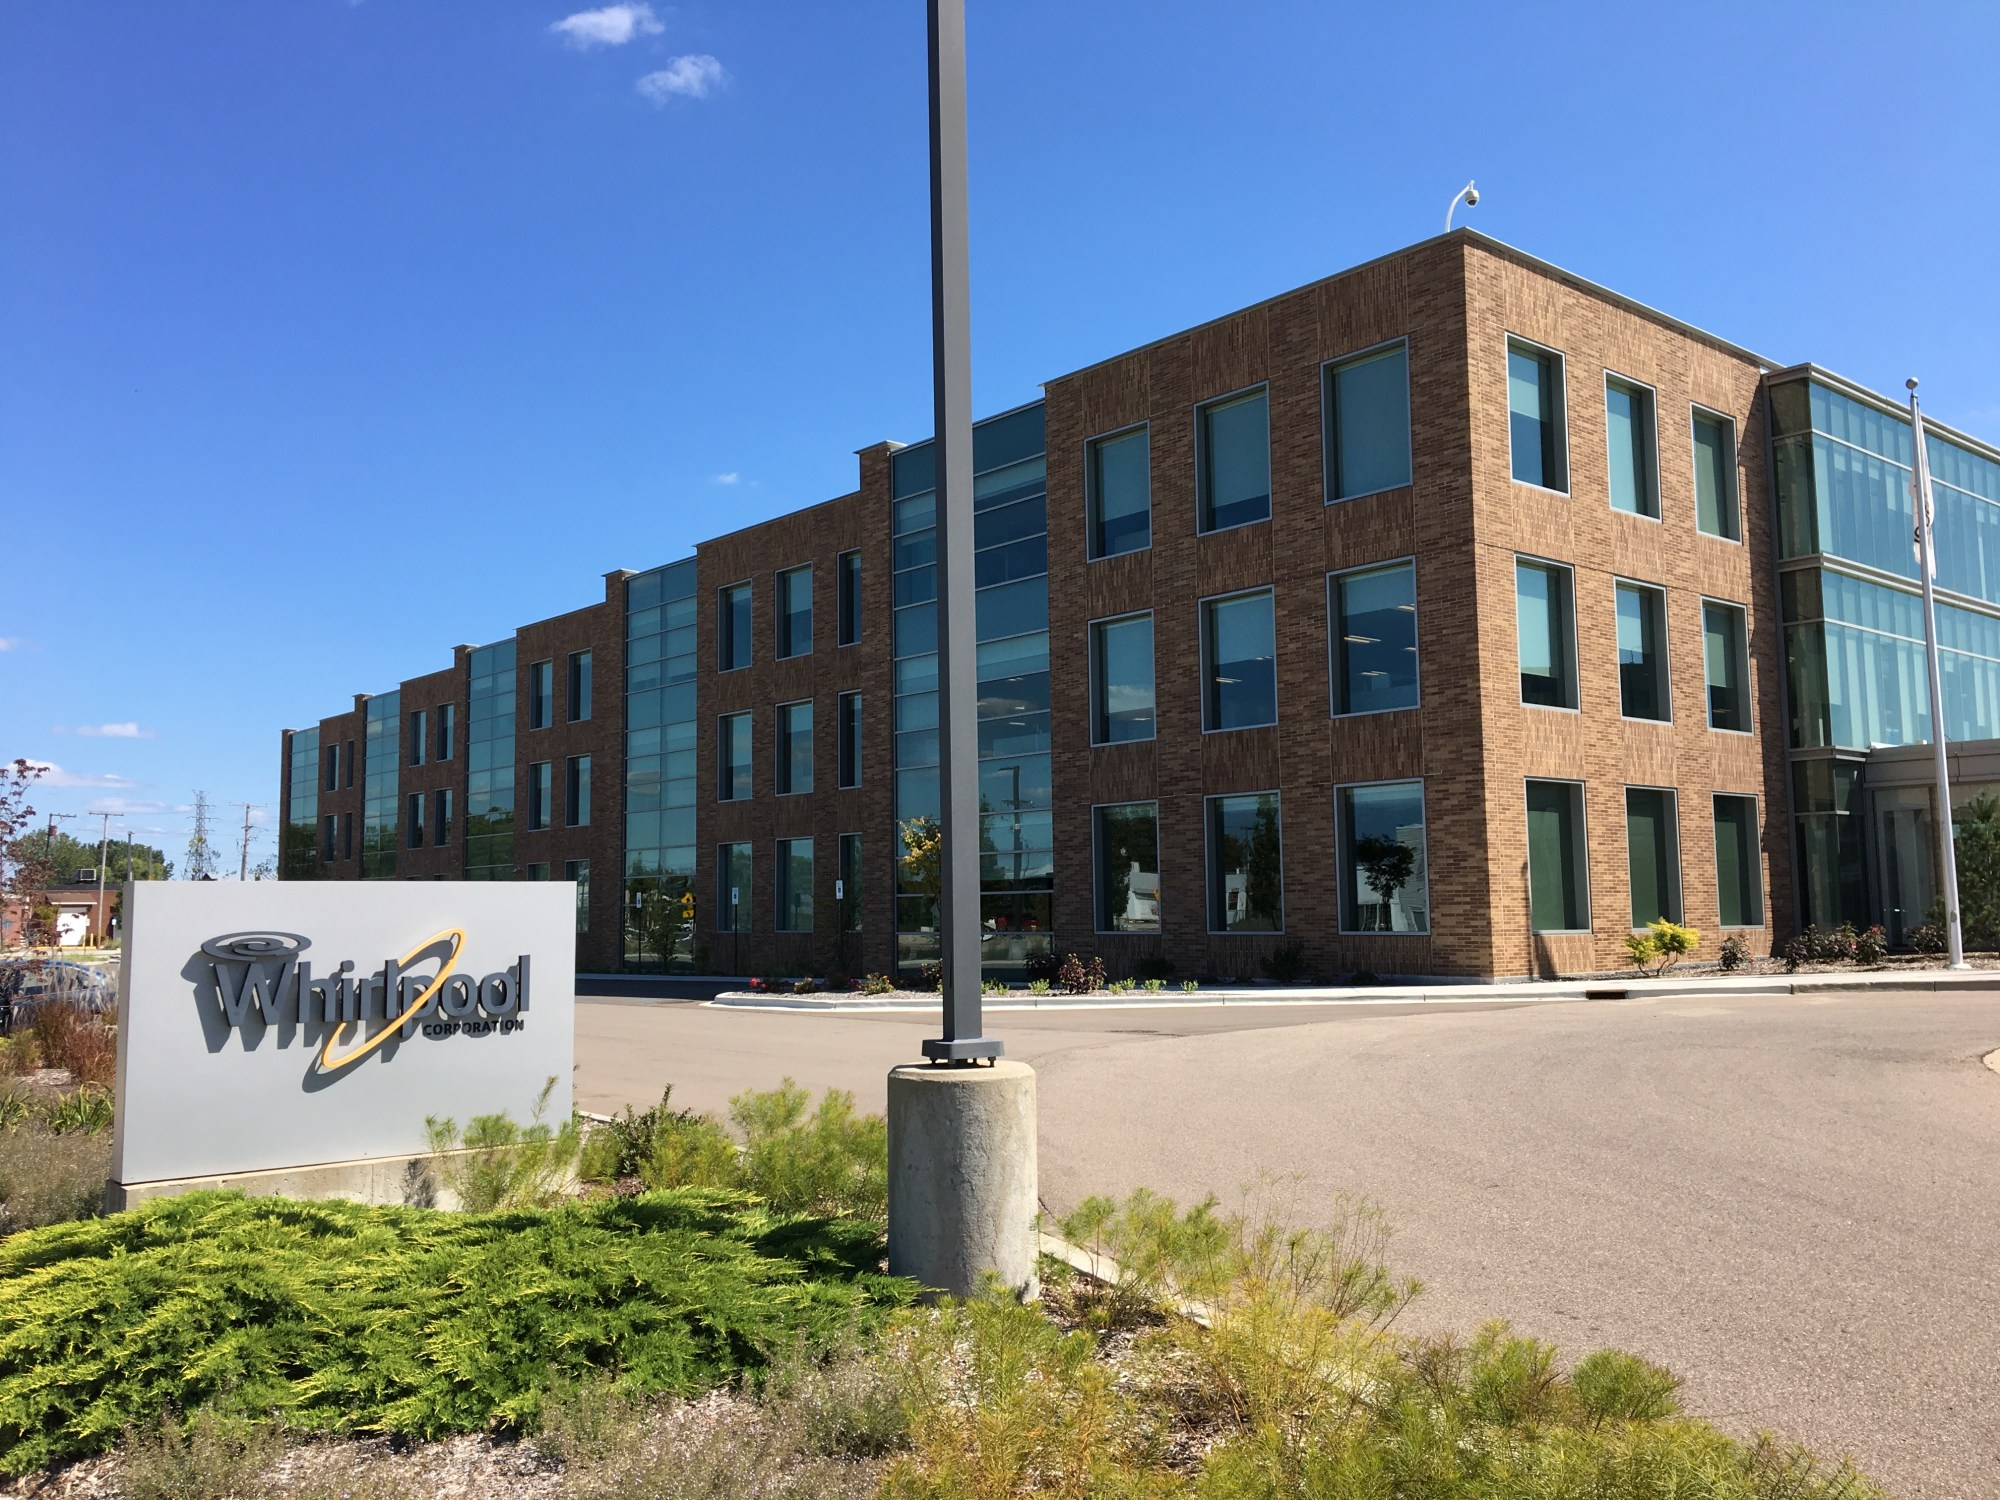 hight resolution of whirlpool corporation s riverview campus in benton harbor michigan